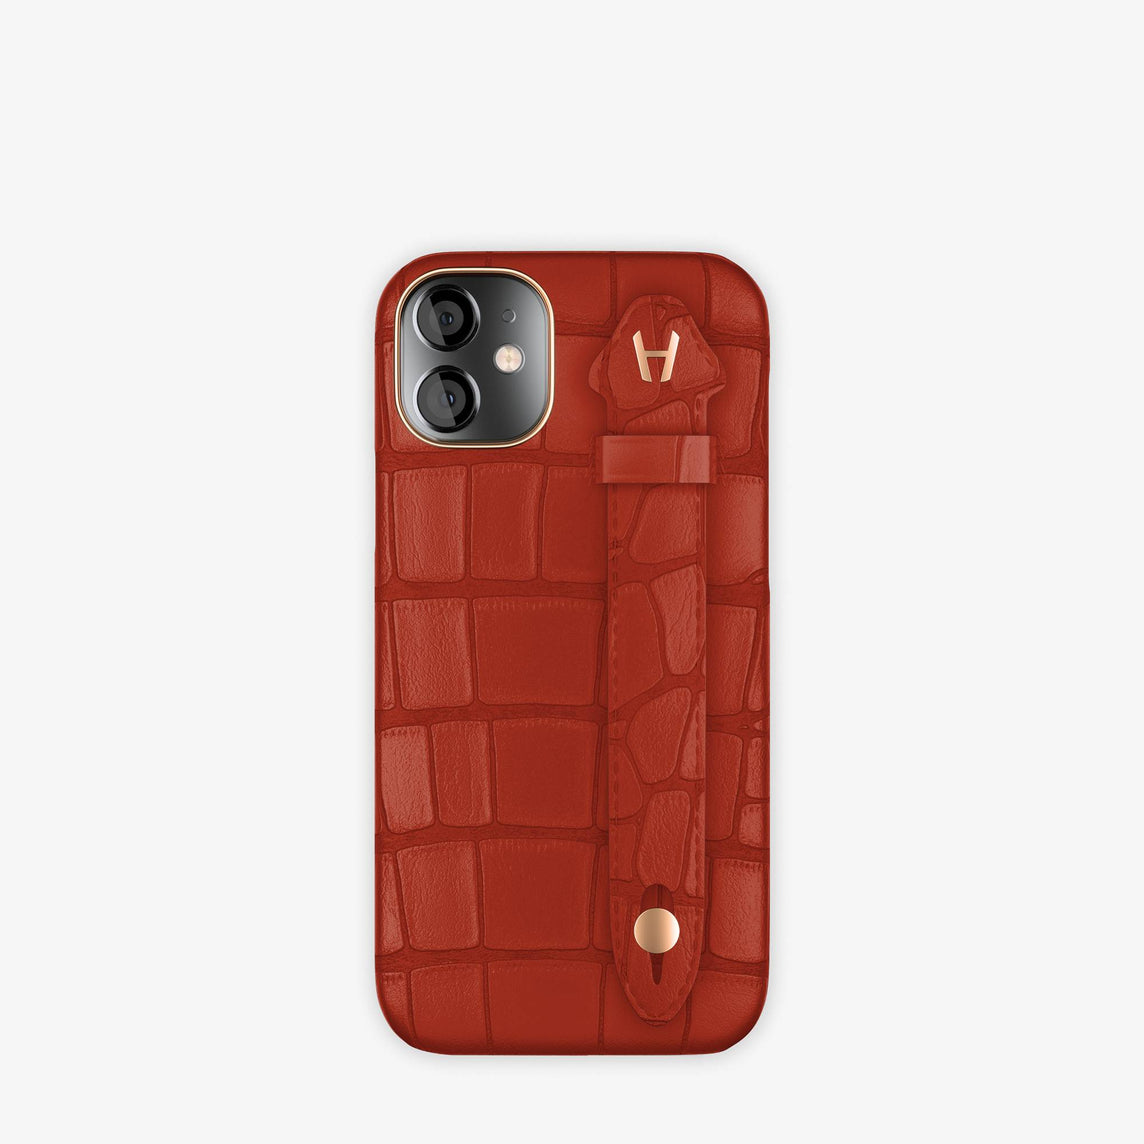 Alligator Side Finger Case iPhone 12 Mini | Red Ruby/Red Ruby -Rose Gold